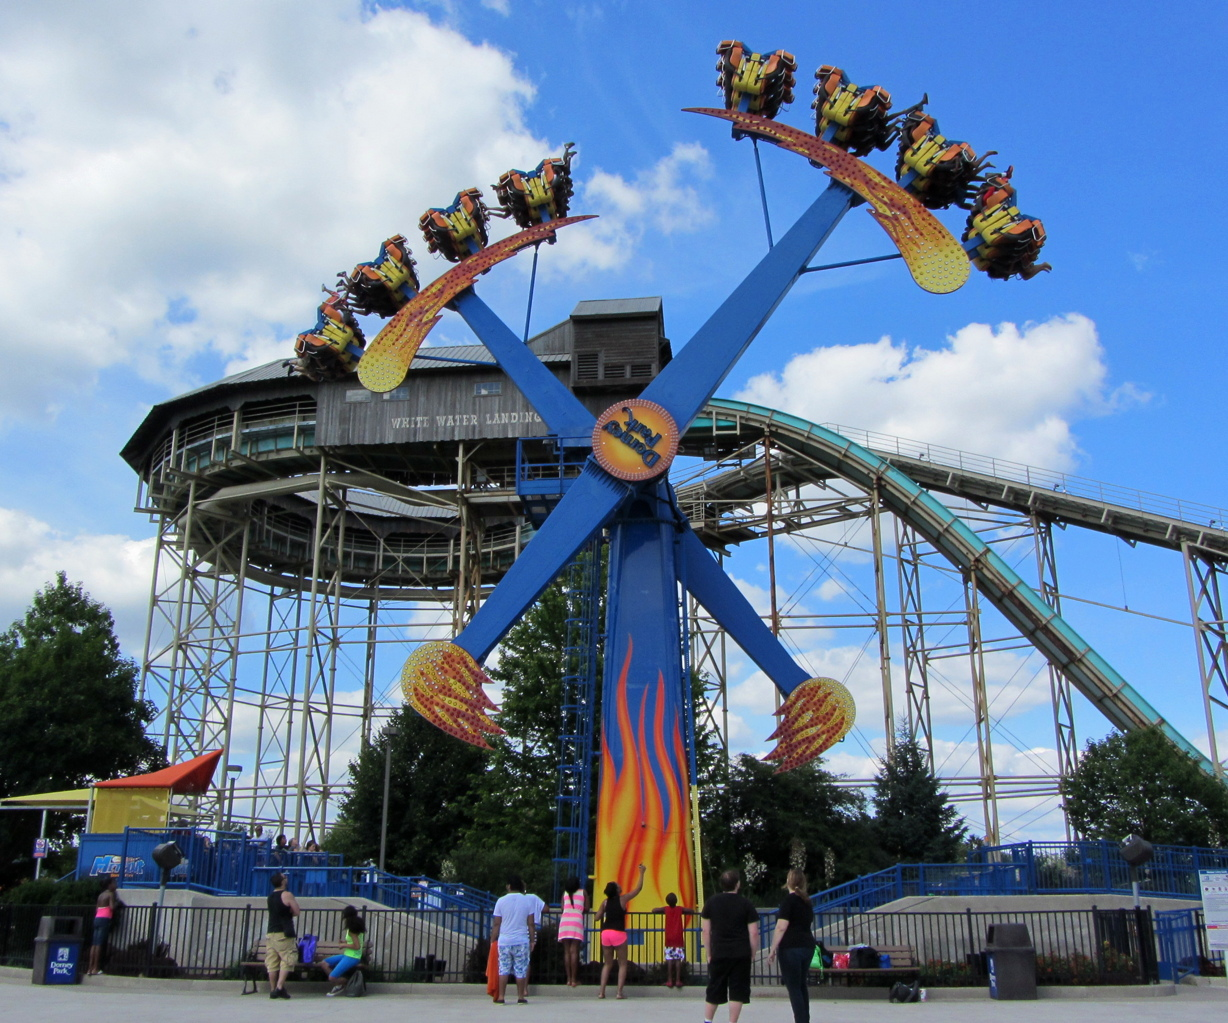 Hershey Park Discount Tickets Looking for discount tickets to Hershey Park in Hershey PA? There are many ways to get discount tickets to amusements parks including Hershey. We will be constantly scouting for these discounts, codes and coupons and posting them here.